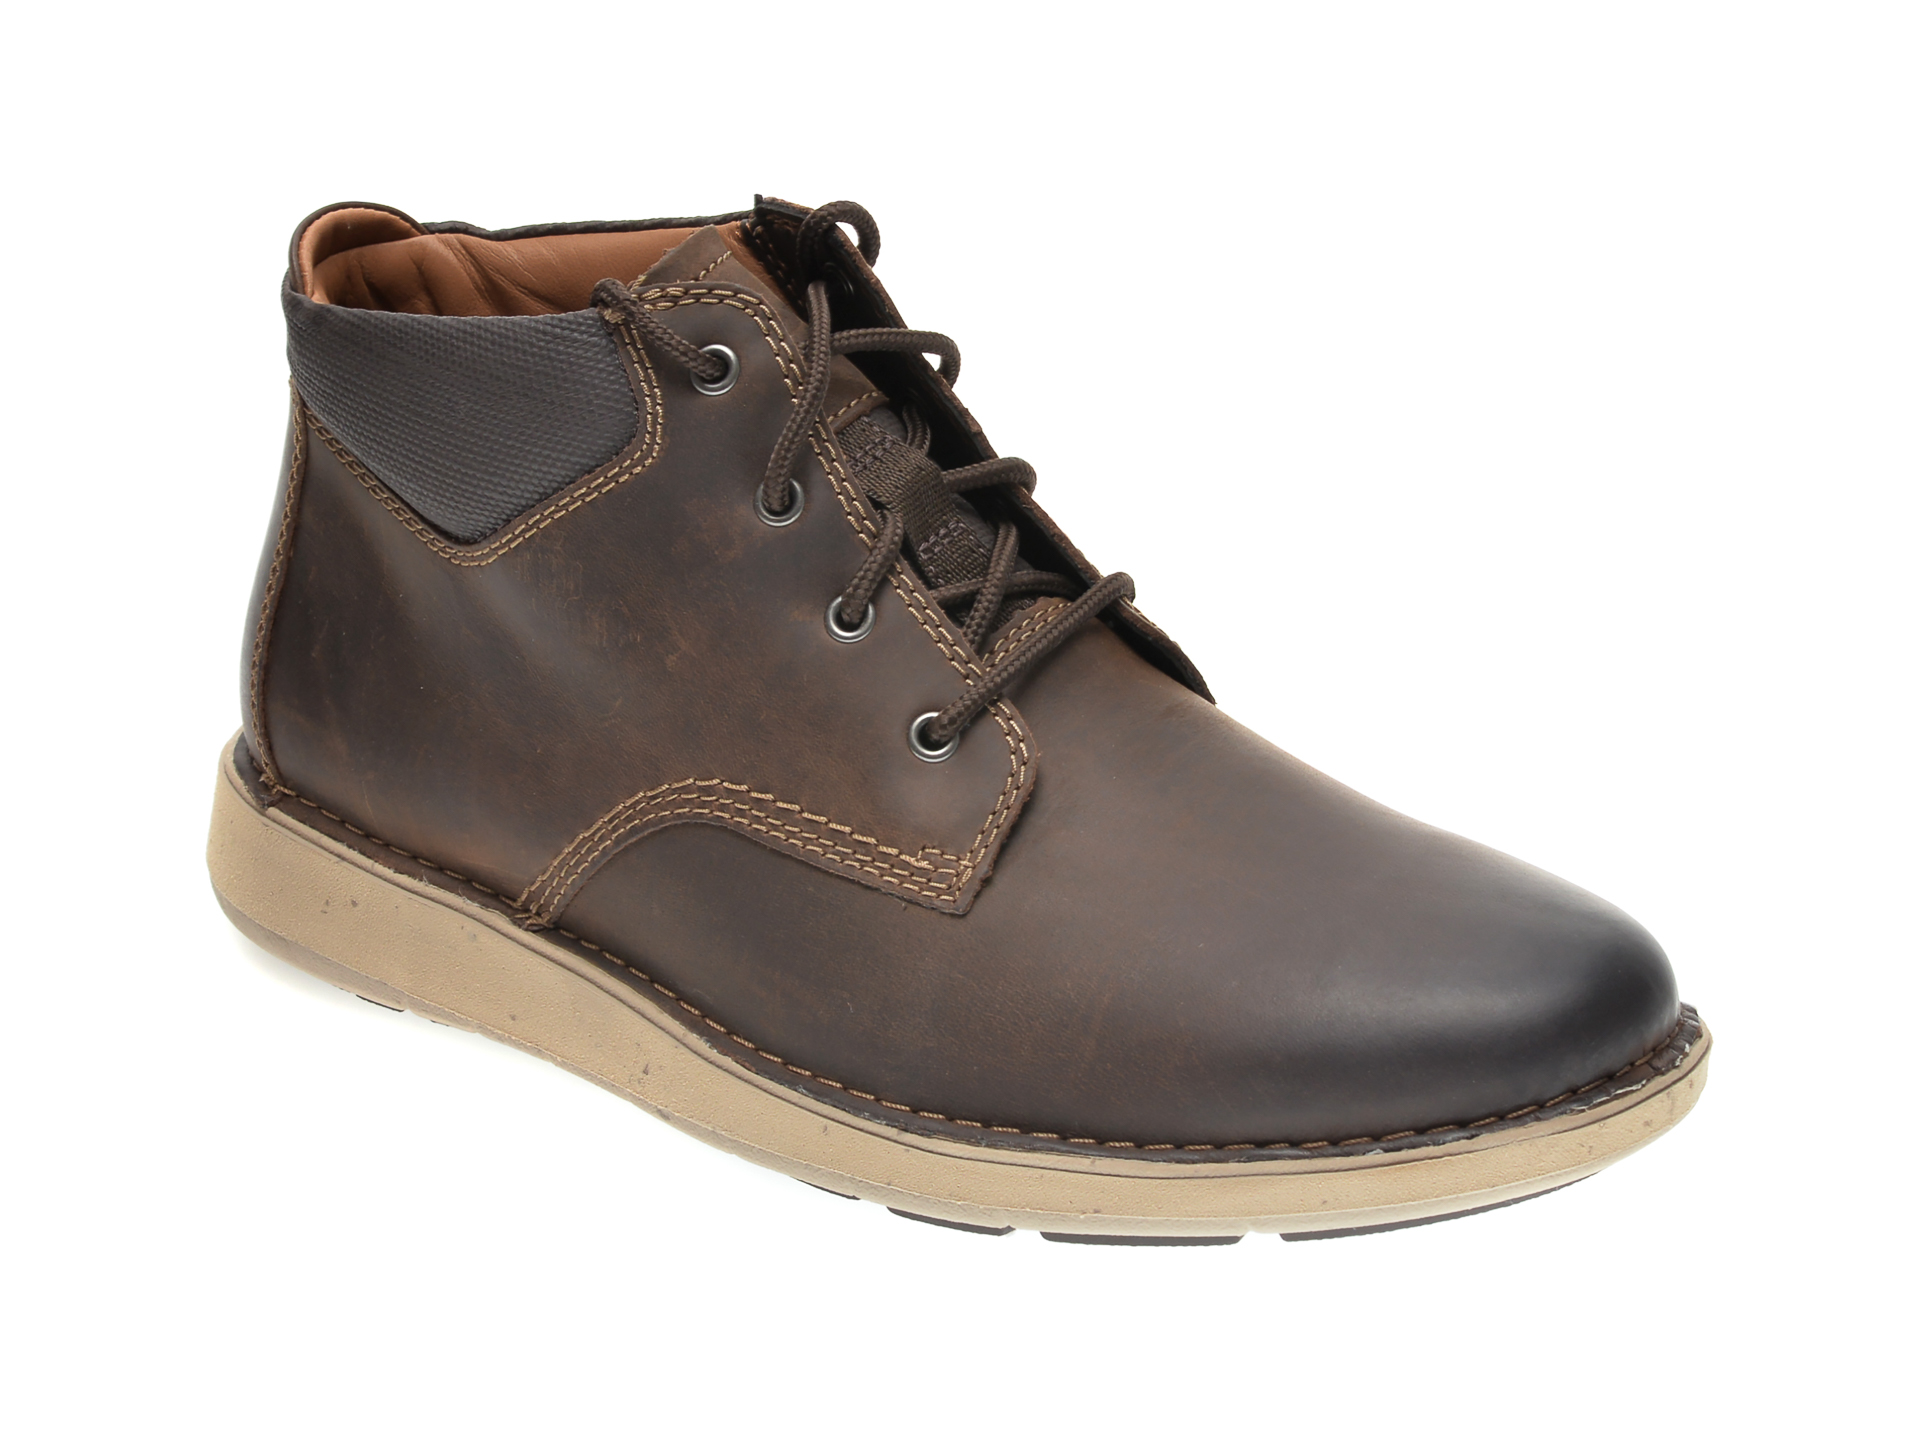 Ghete CLARKS maro, UN LARVIK TOP, din piele naturala imagine